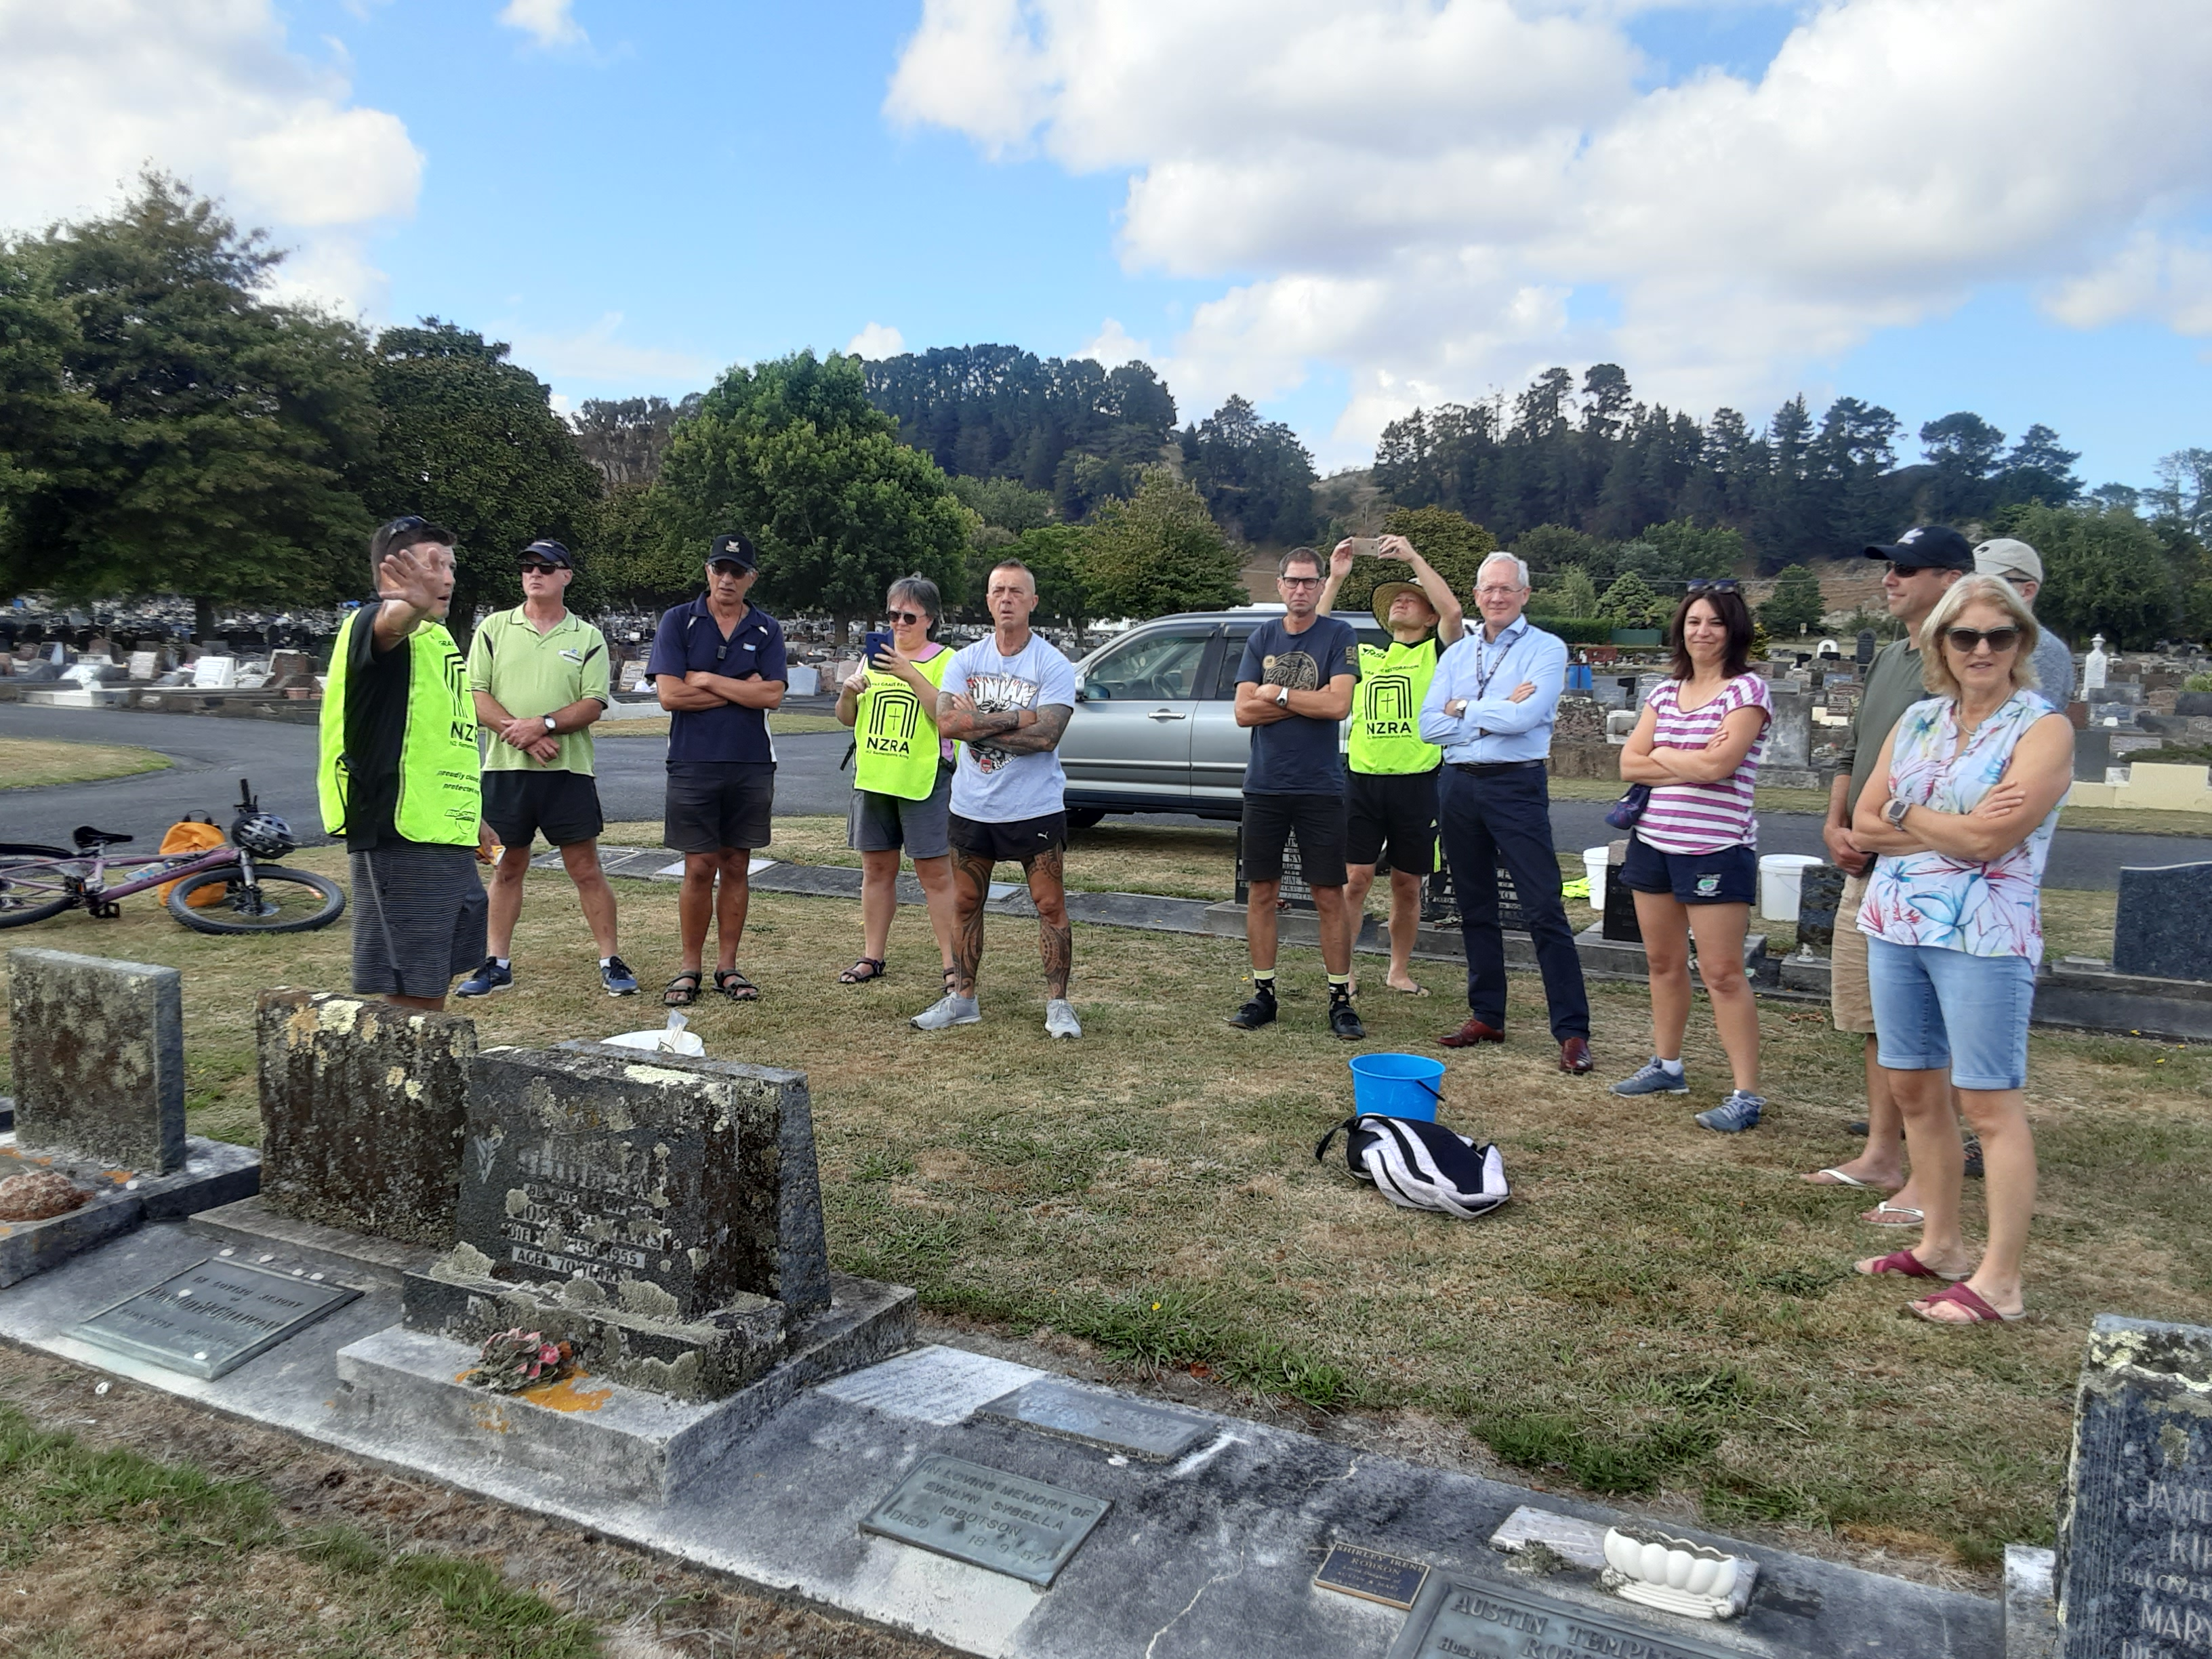 Major Emeritus Simon Strombom DSD runs a tutorial on cleaning service graves in Whanganui for 5WWCT reunion